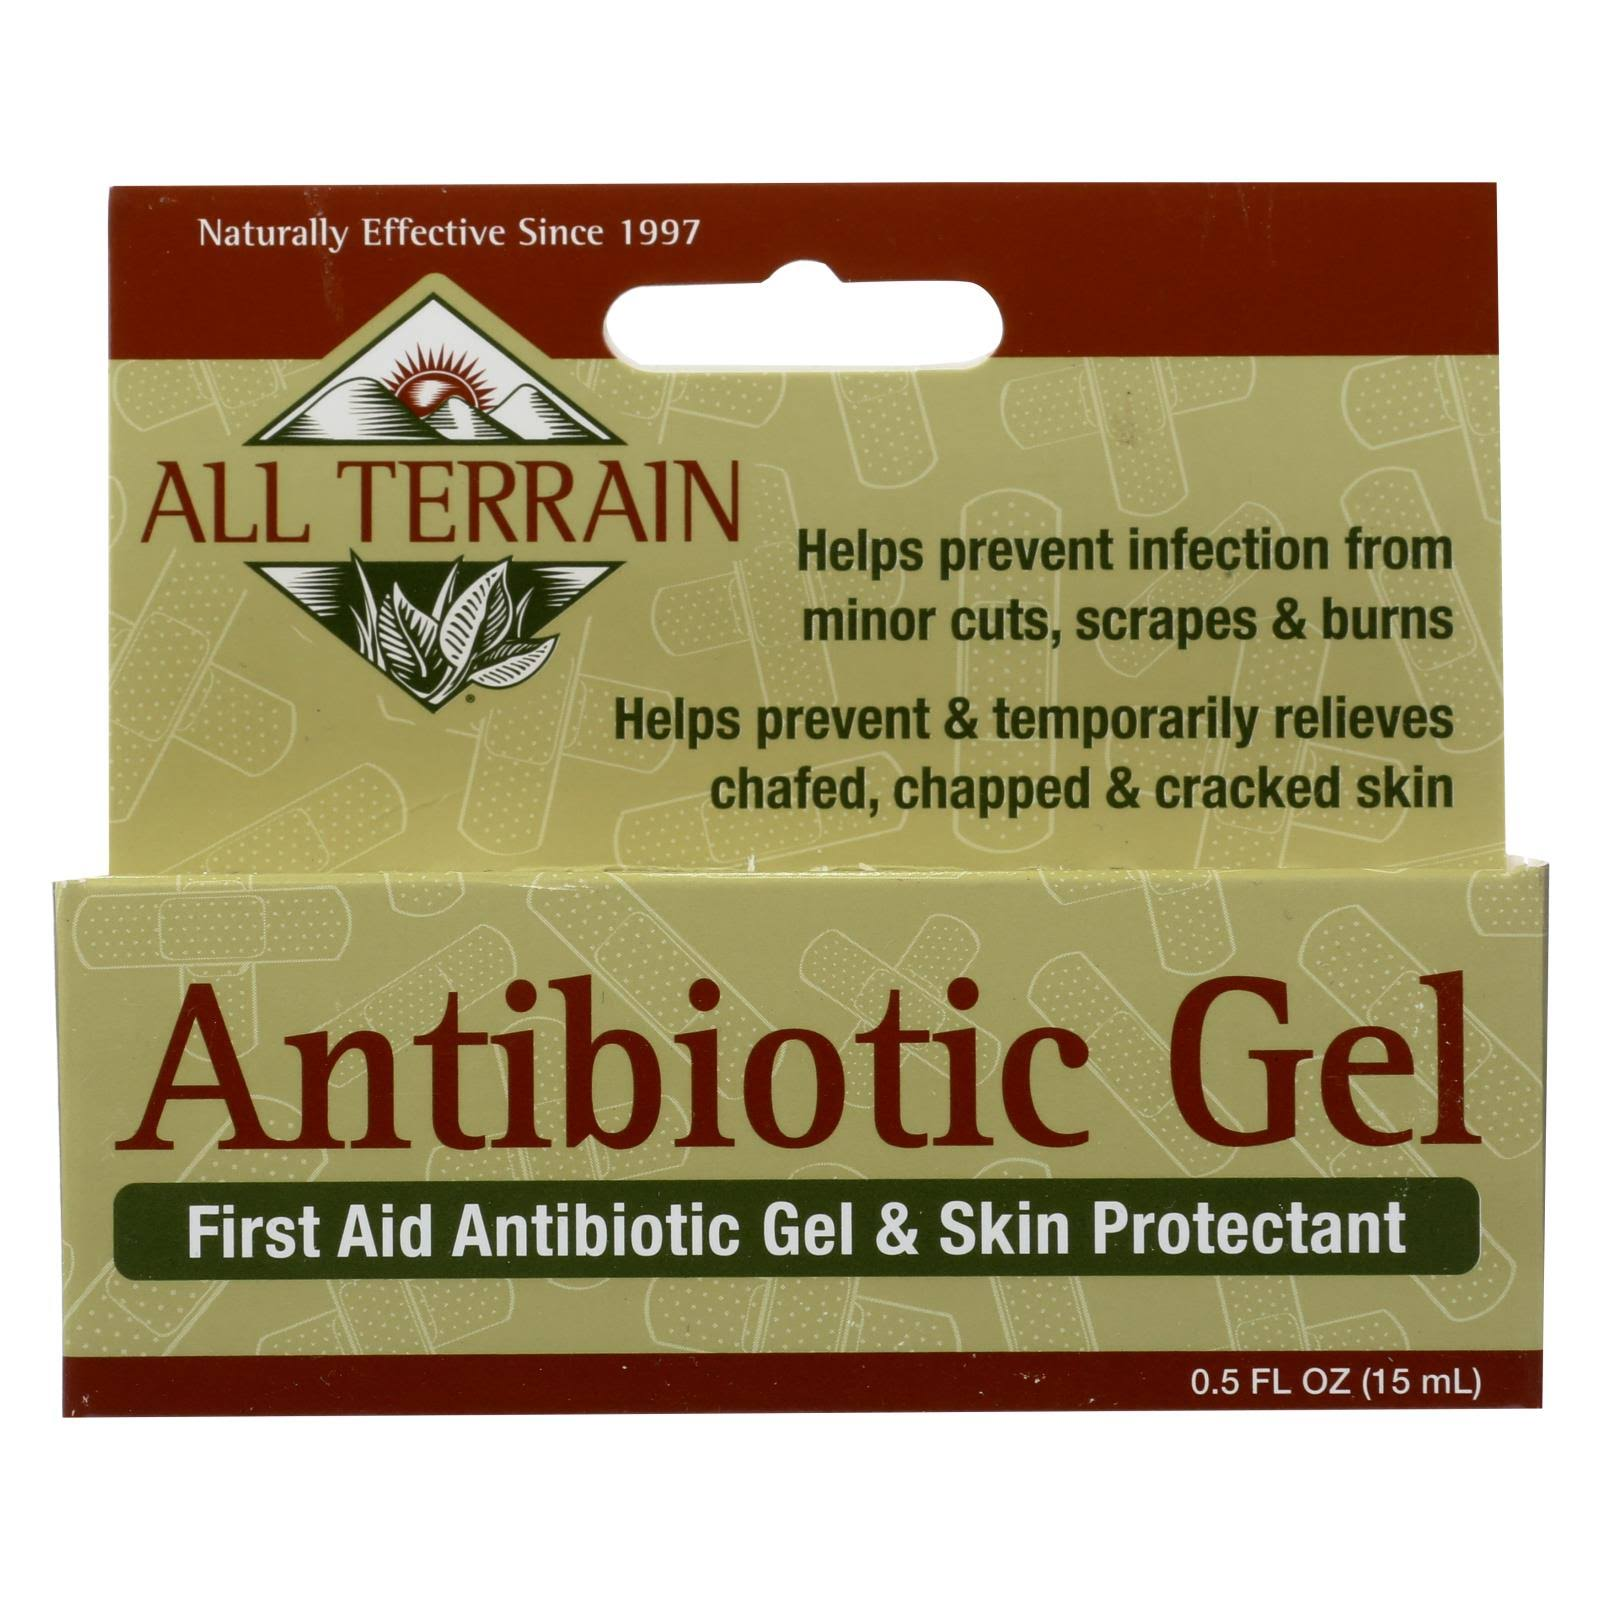 All Terrain First Aid Antibiotic Gel - 0.5oz